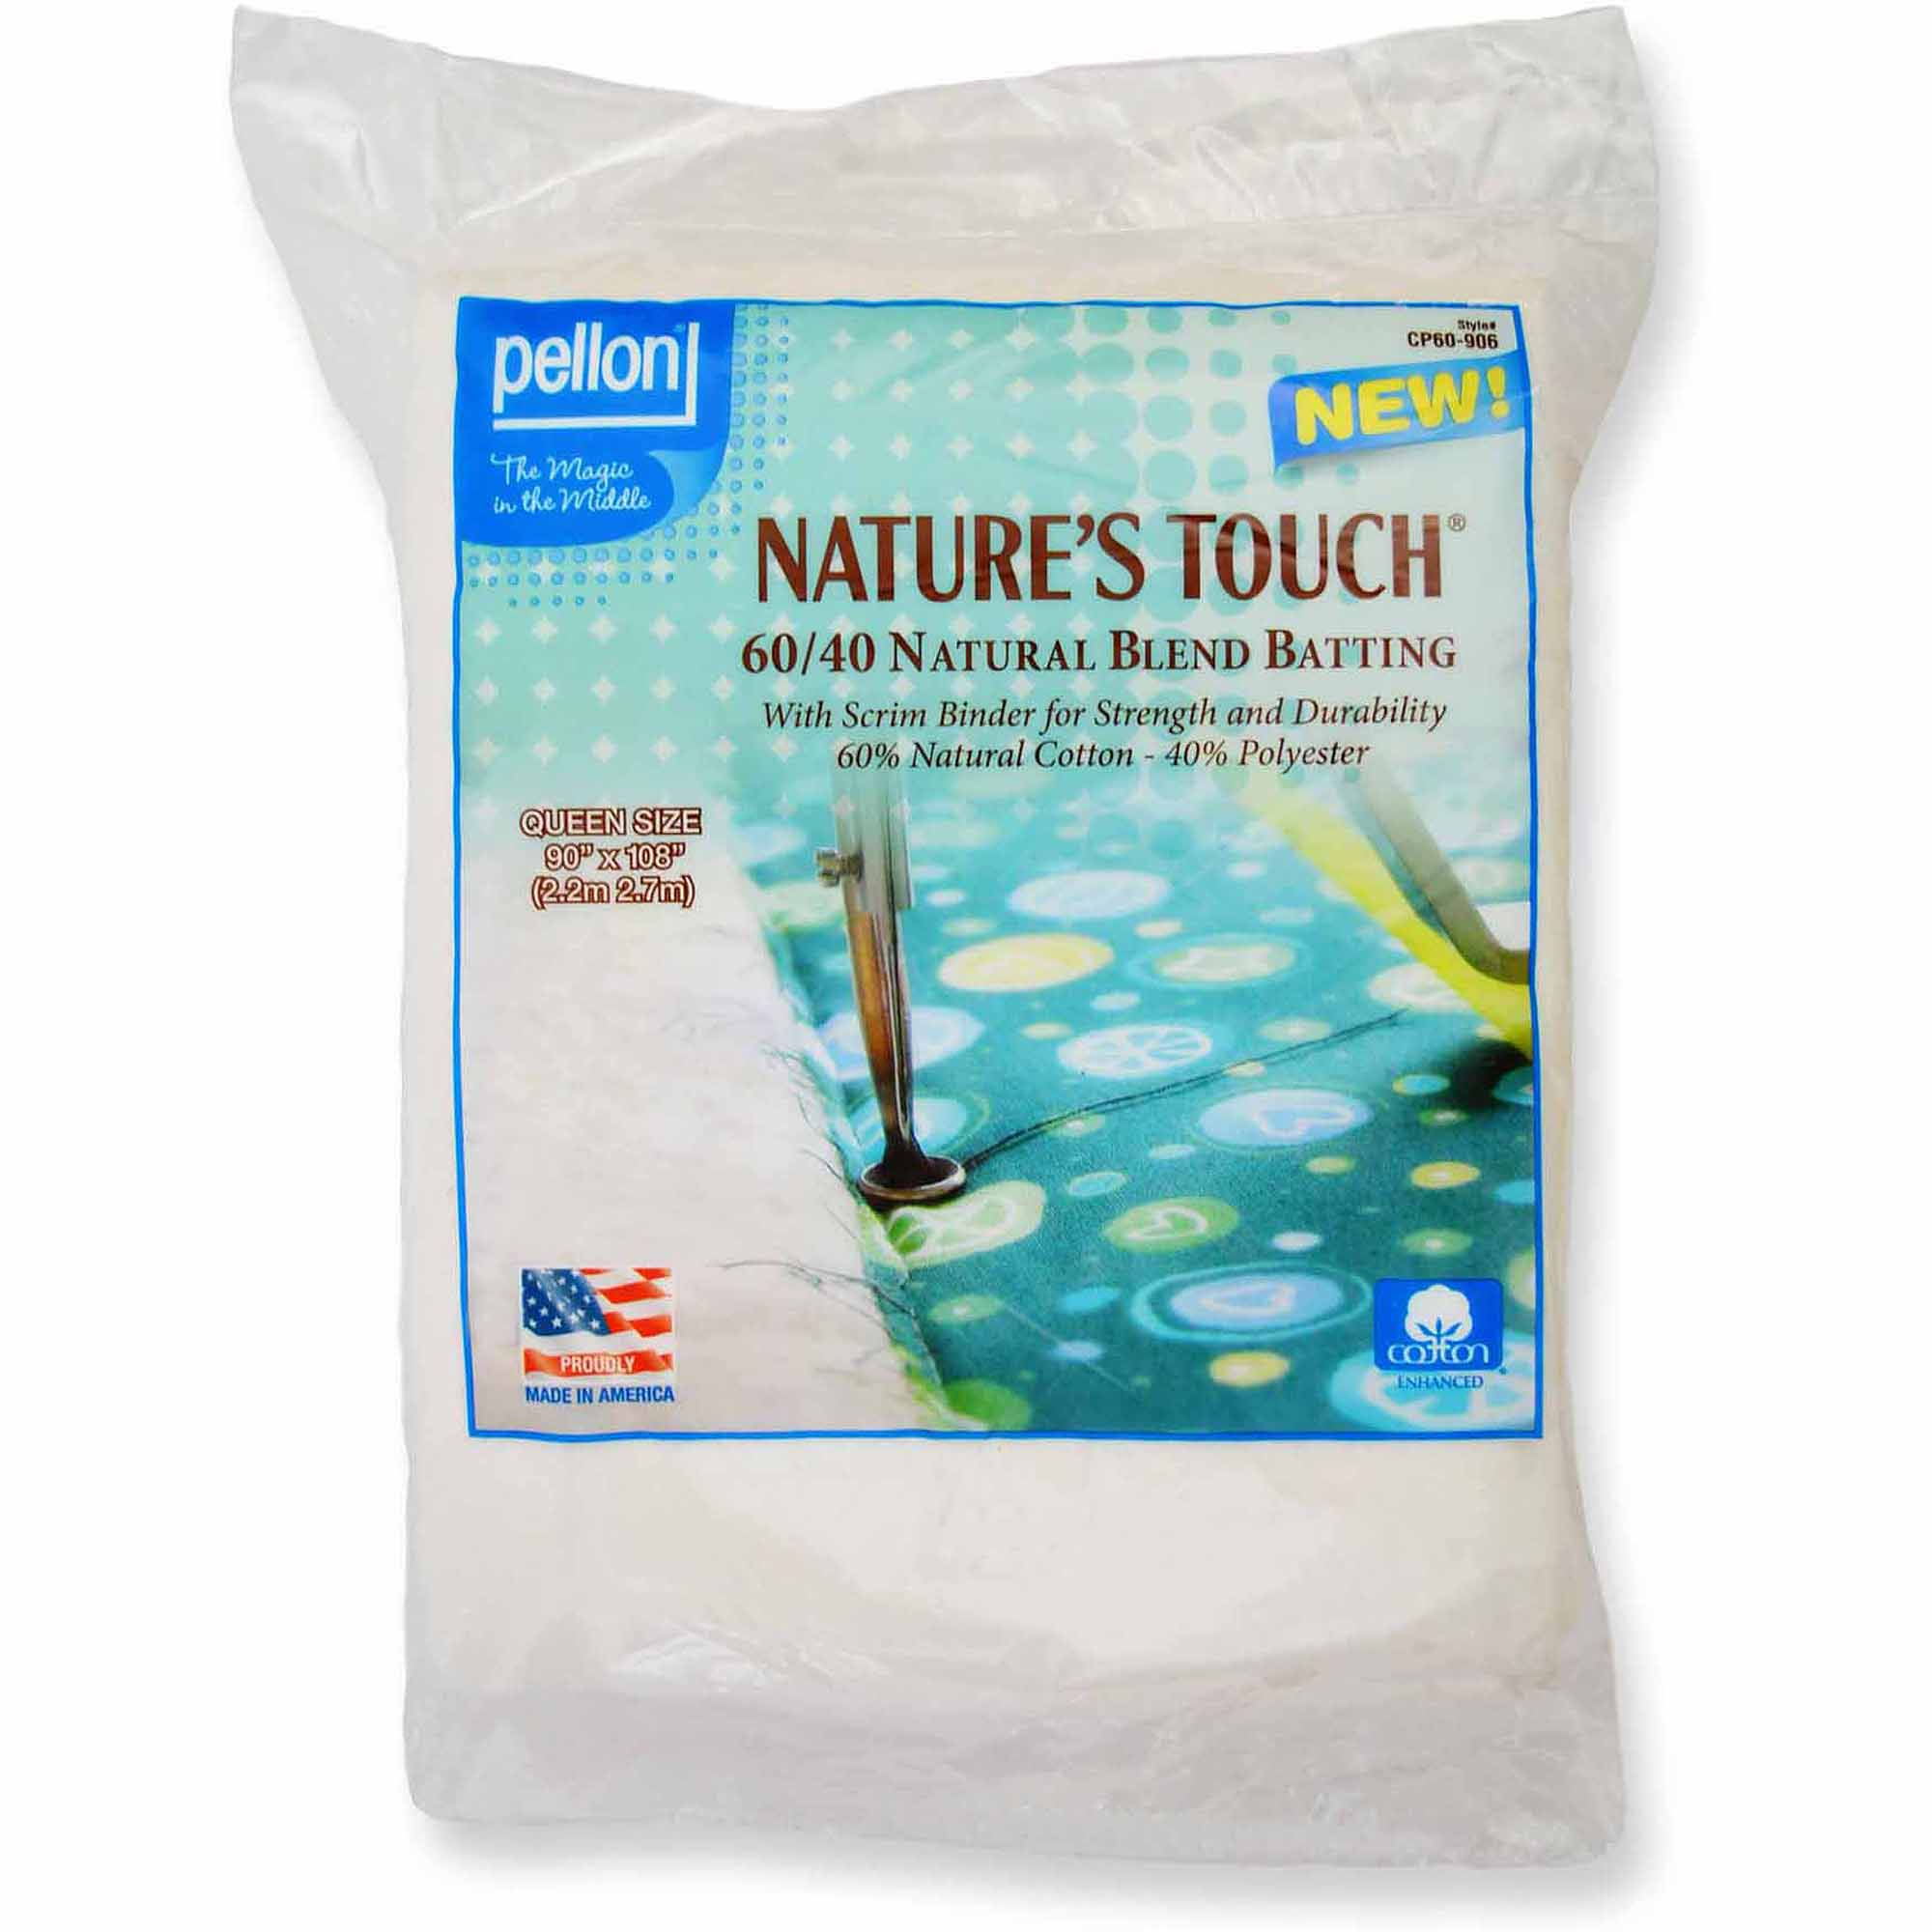 Pellon Nature's Touch 60/40 Batting with Scrim